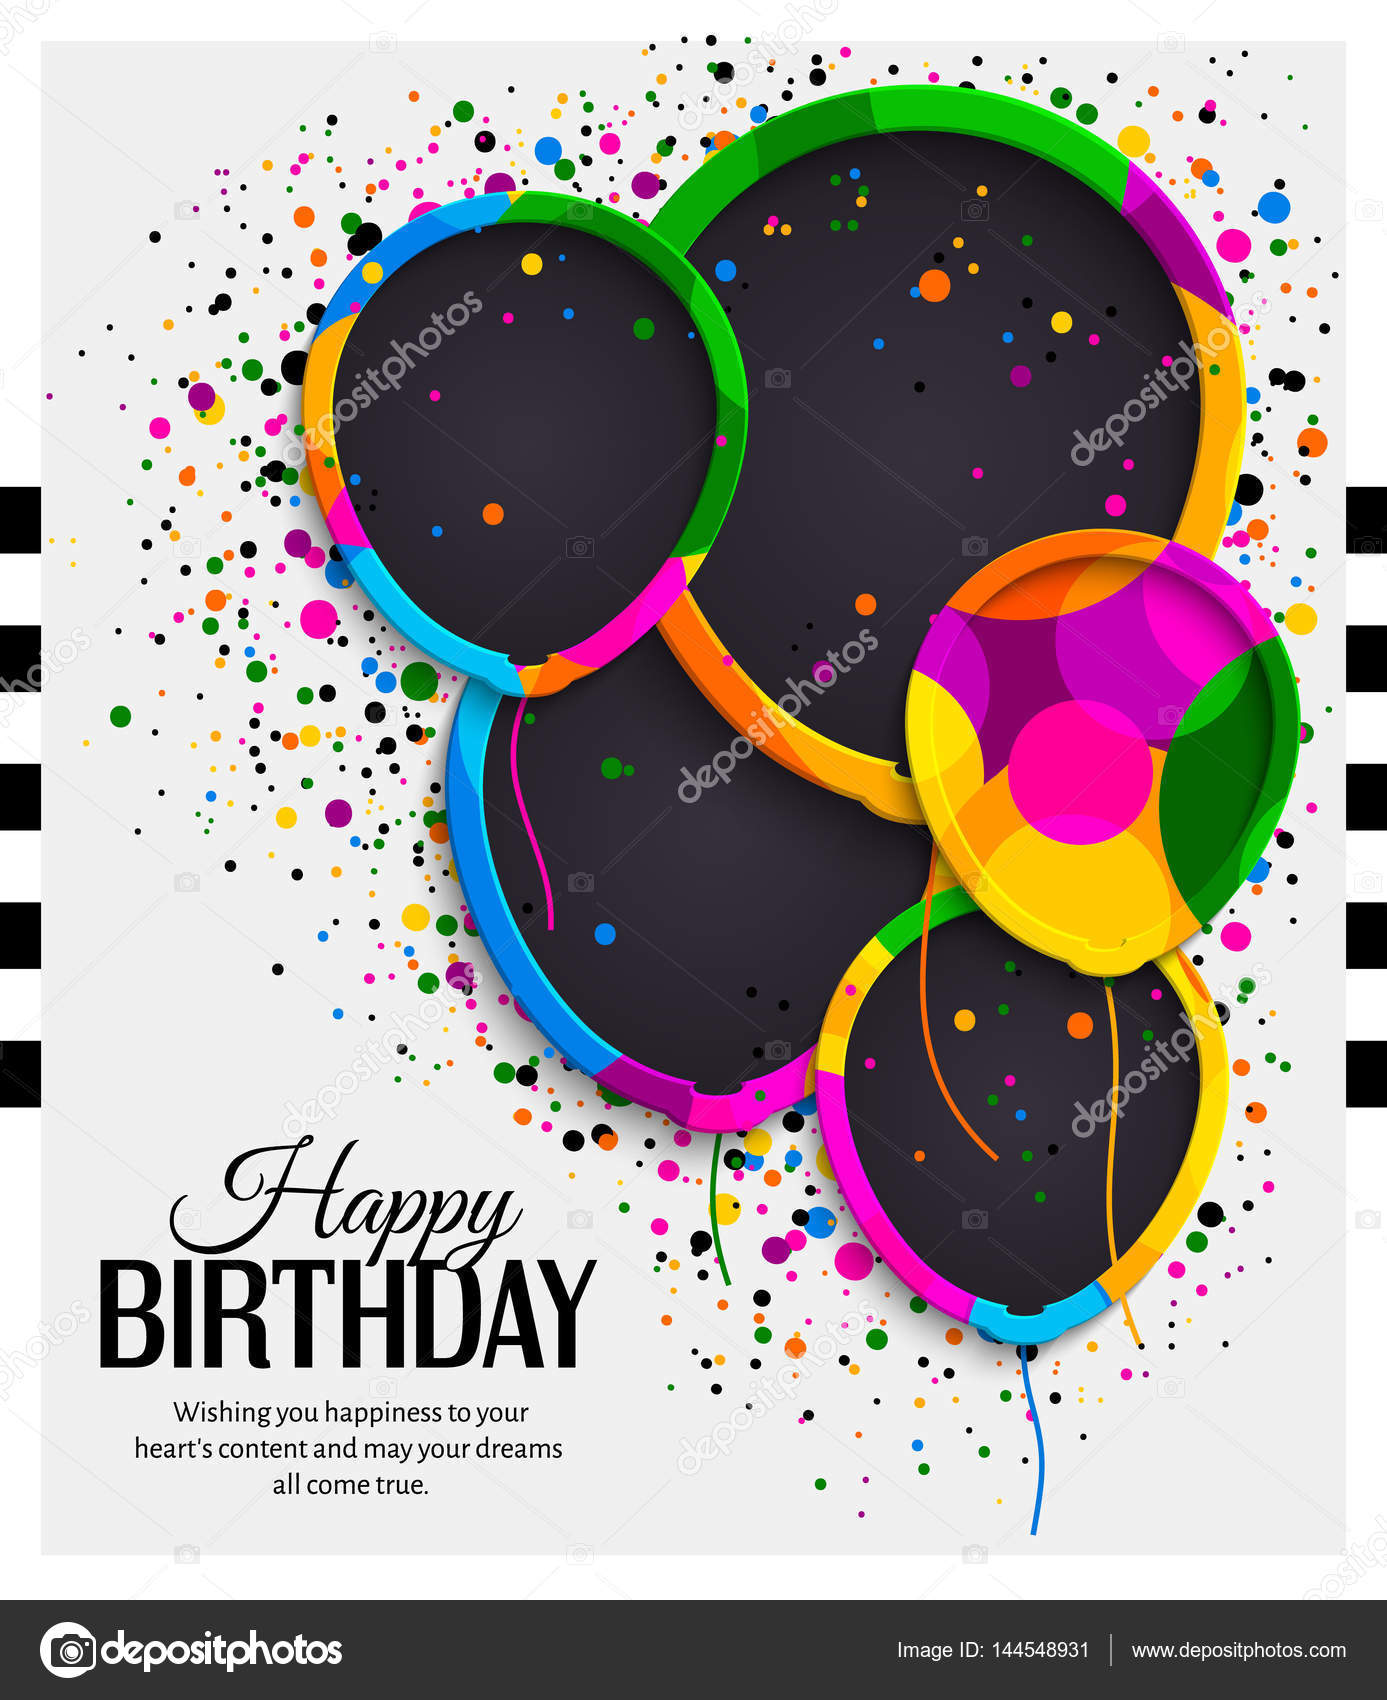 colorful birthday borders ; depositphotos_144548931-stock-illustration-happy-birthday-greeting-card-paper